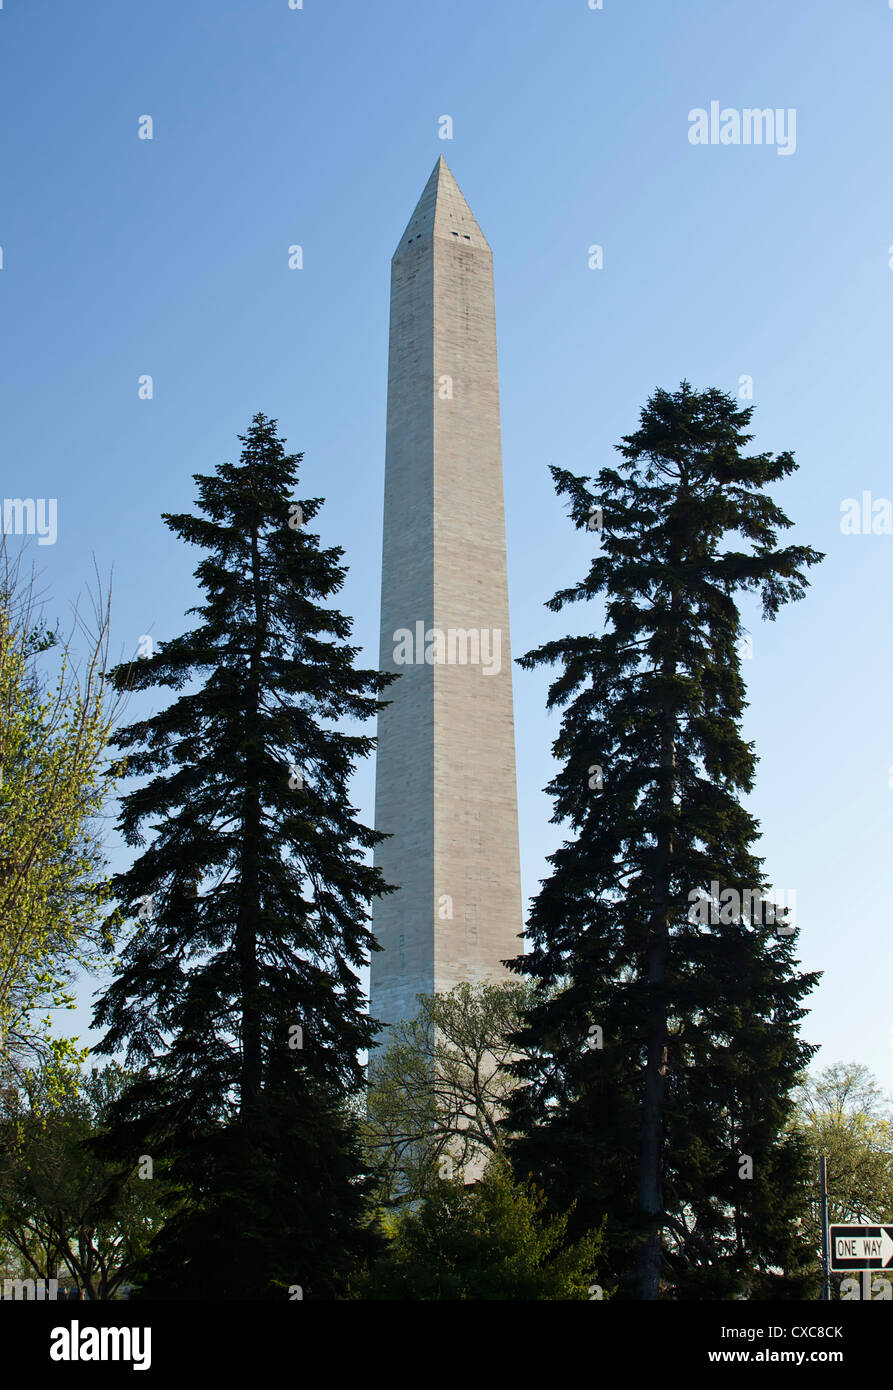 El Monumento a Washington, en Washington D.C., Estados Unidos de América, América del Norte Imagen De Stock